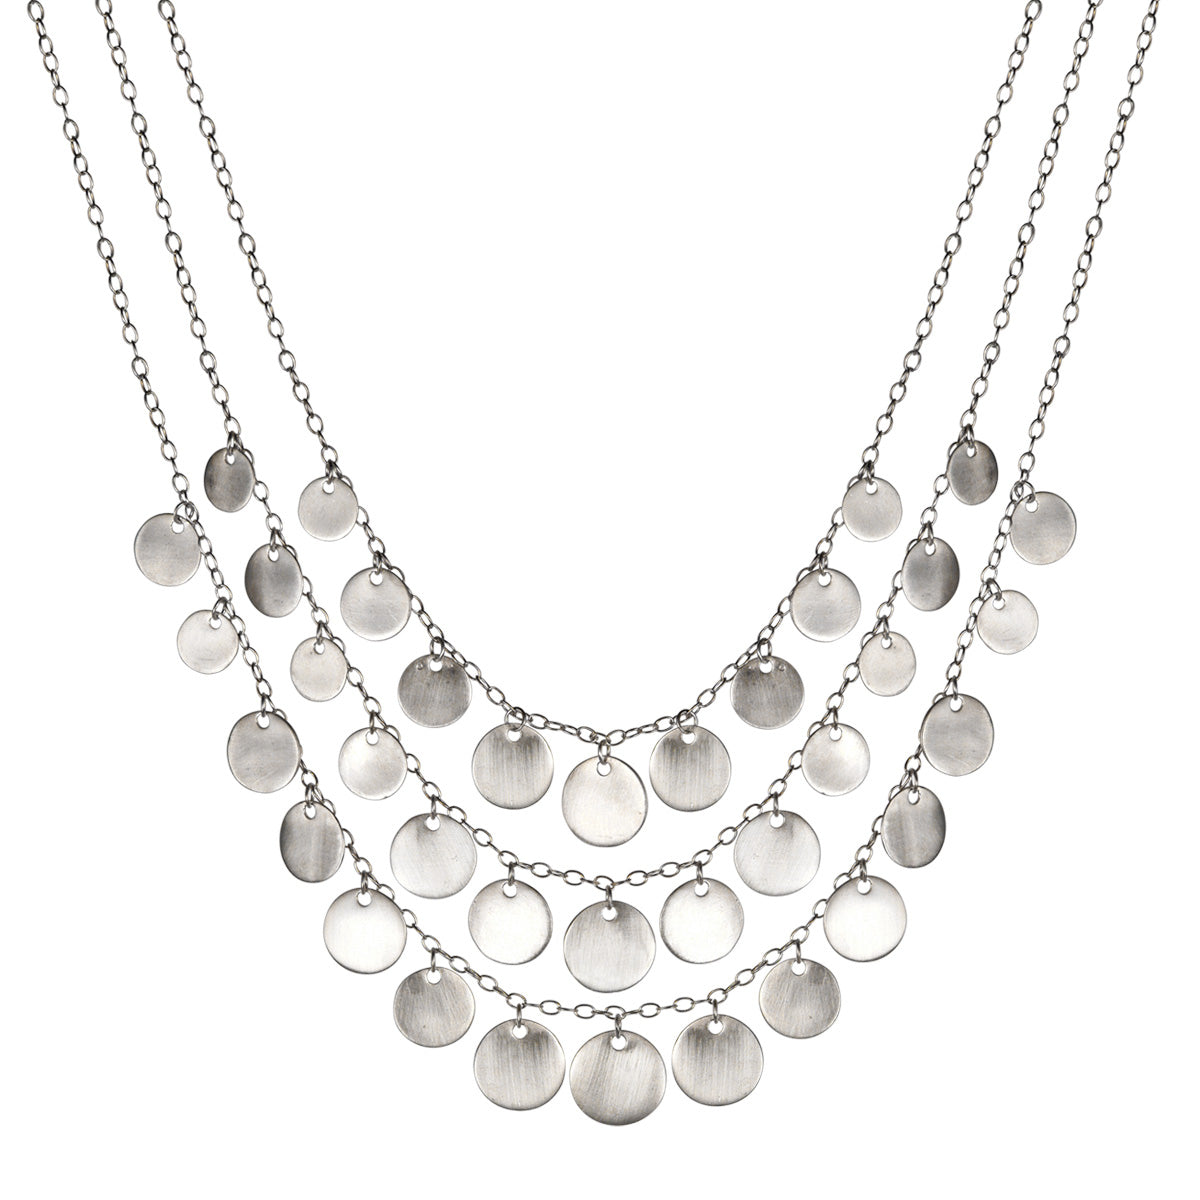 Sterling silver disks necklace Statement necklace with silver disks.